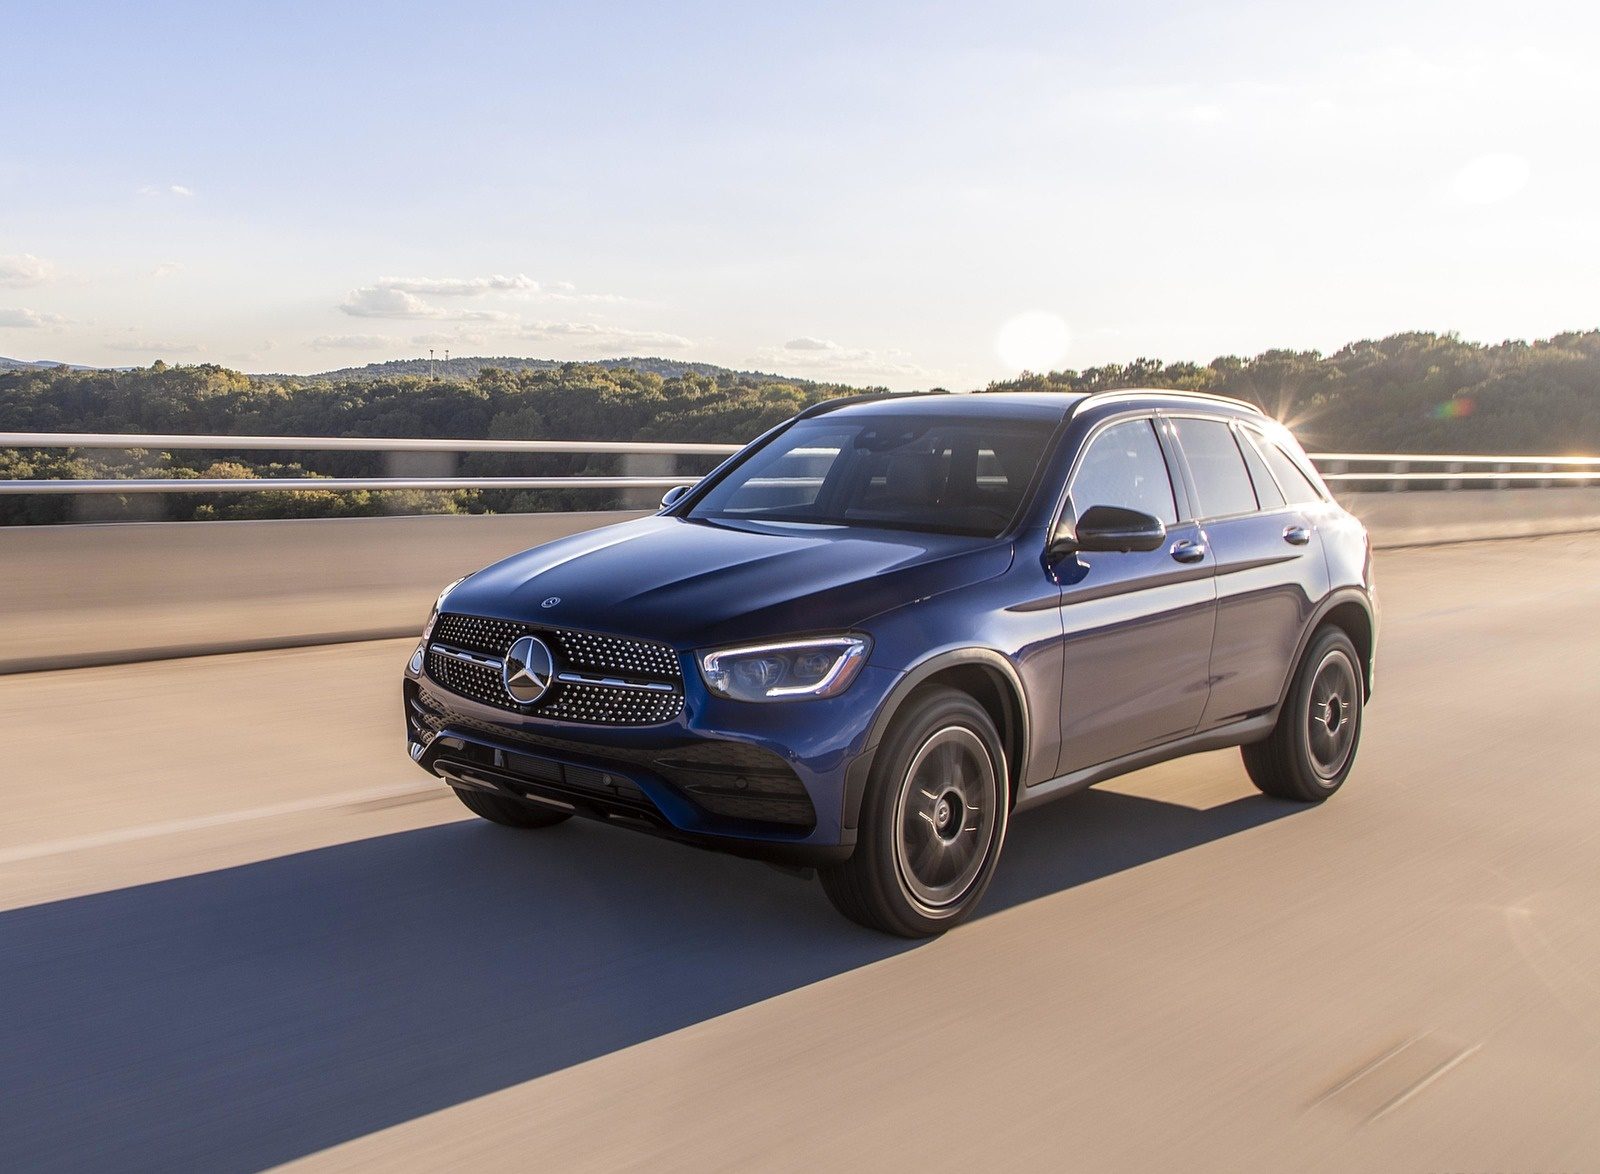 2020 Mercedes-Benz GLC 300 (US-Spec) Front Three-Quarter Wallpapers #5 of 62